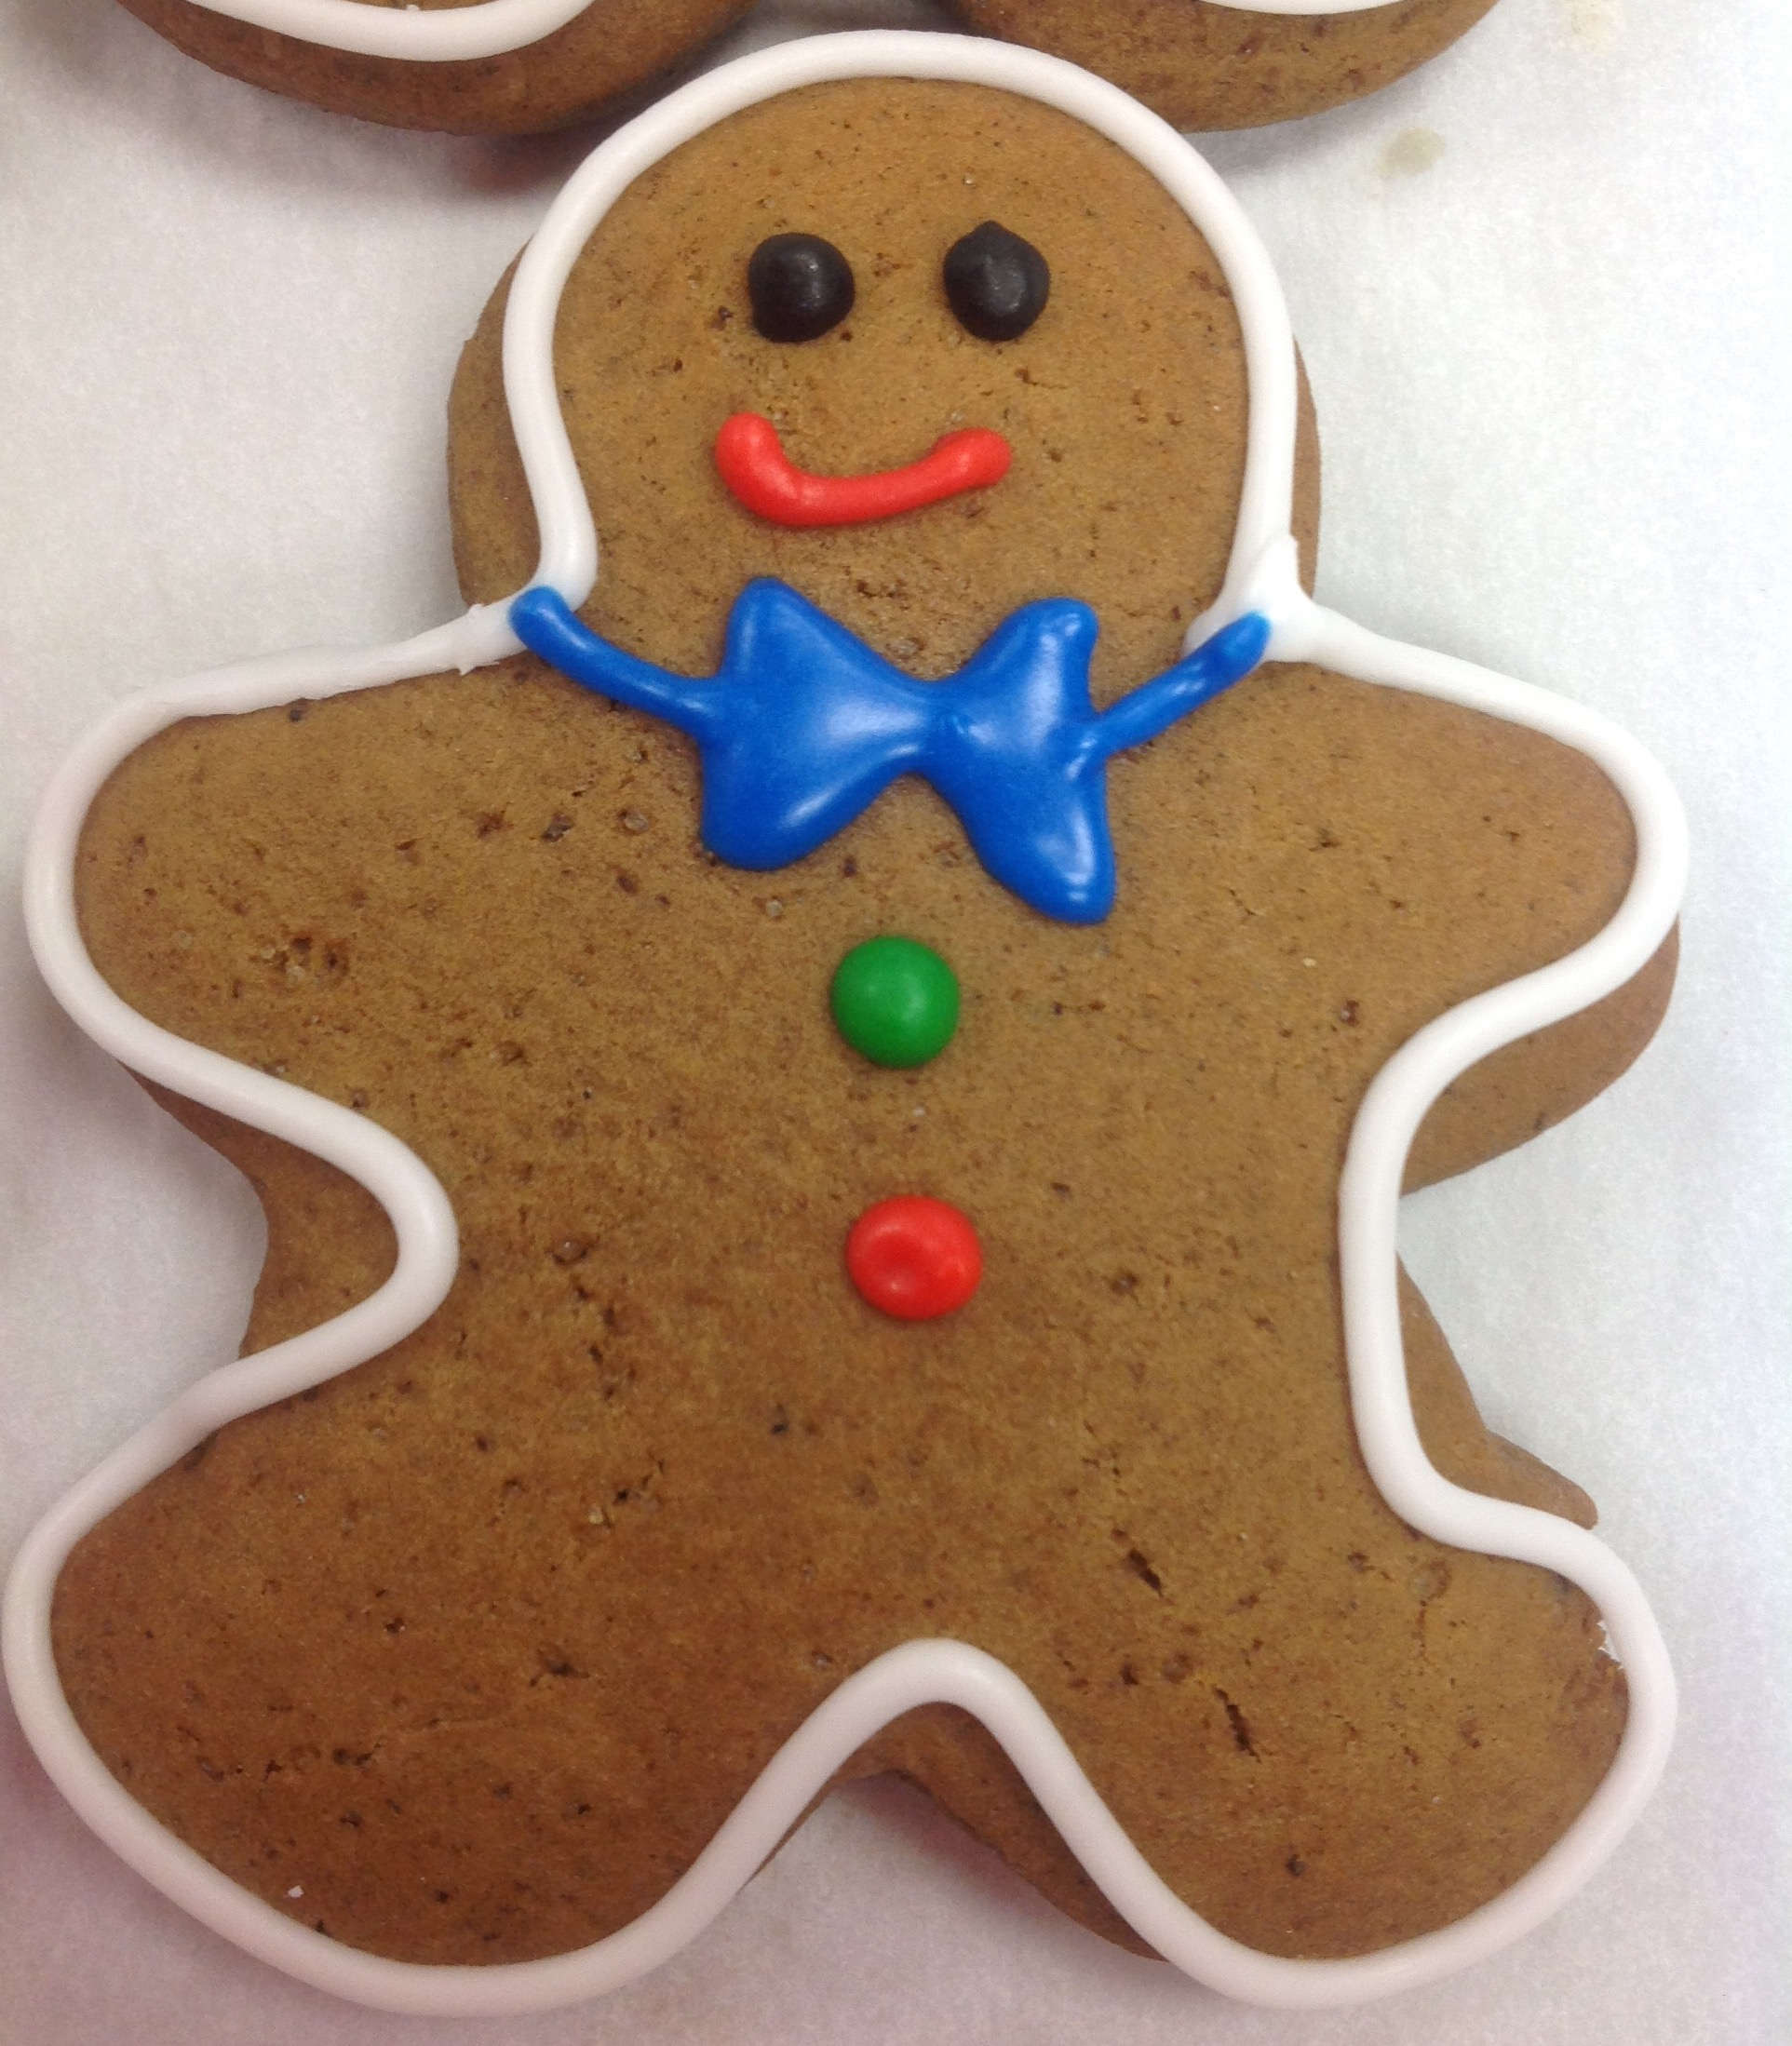 Holiday Cookies at Dolce and Biscotti Italian Bakery